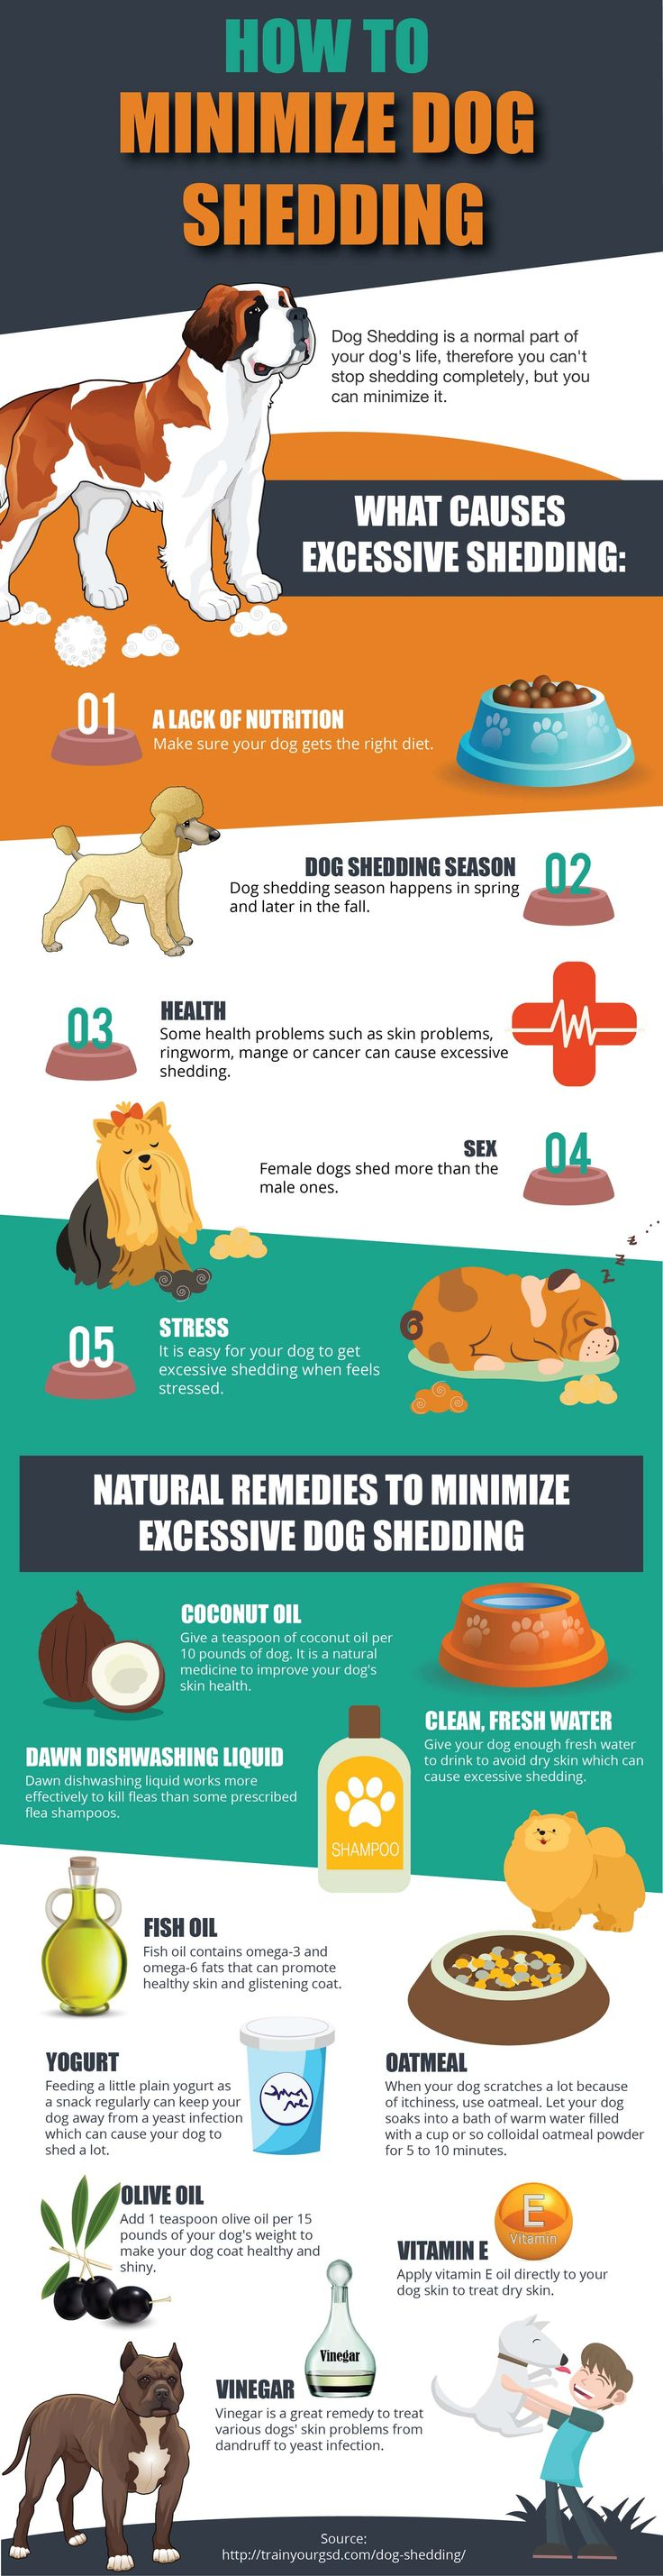 9 Ways To Reduce Dog Shedding - Infographic